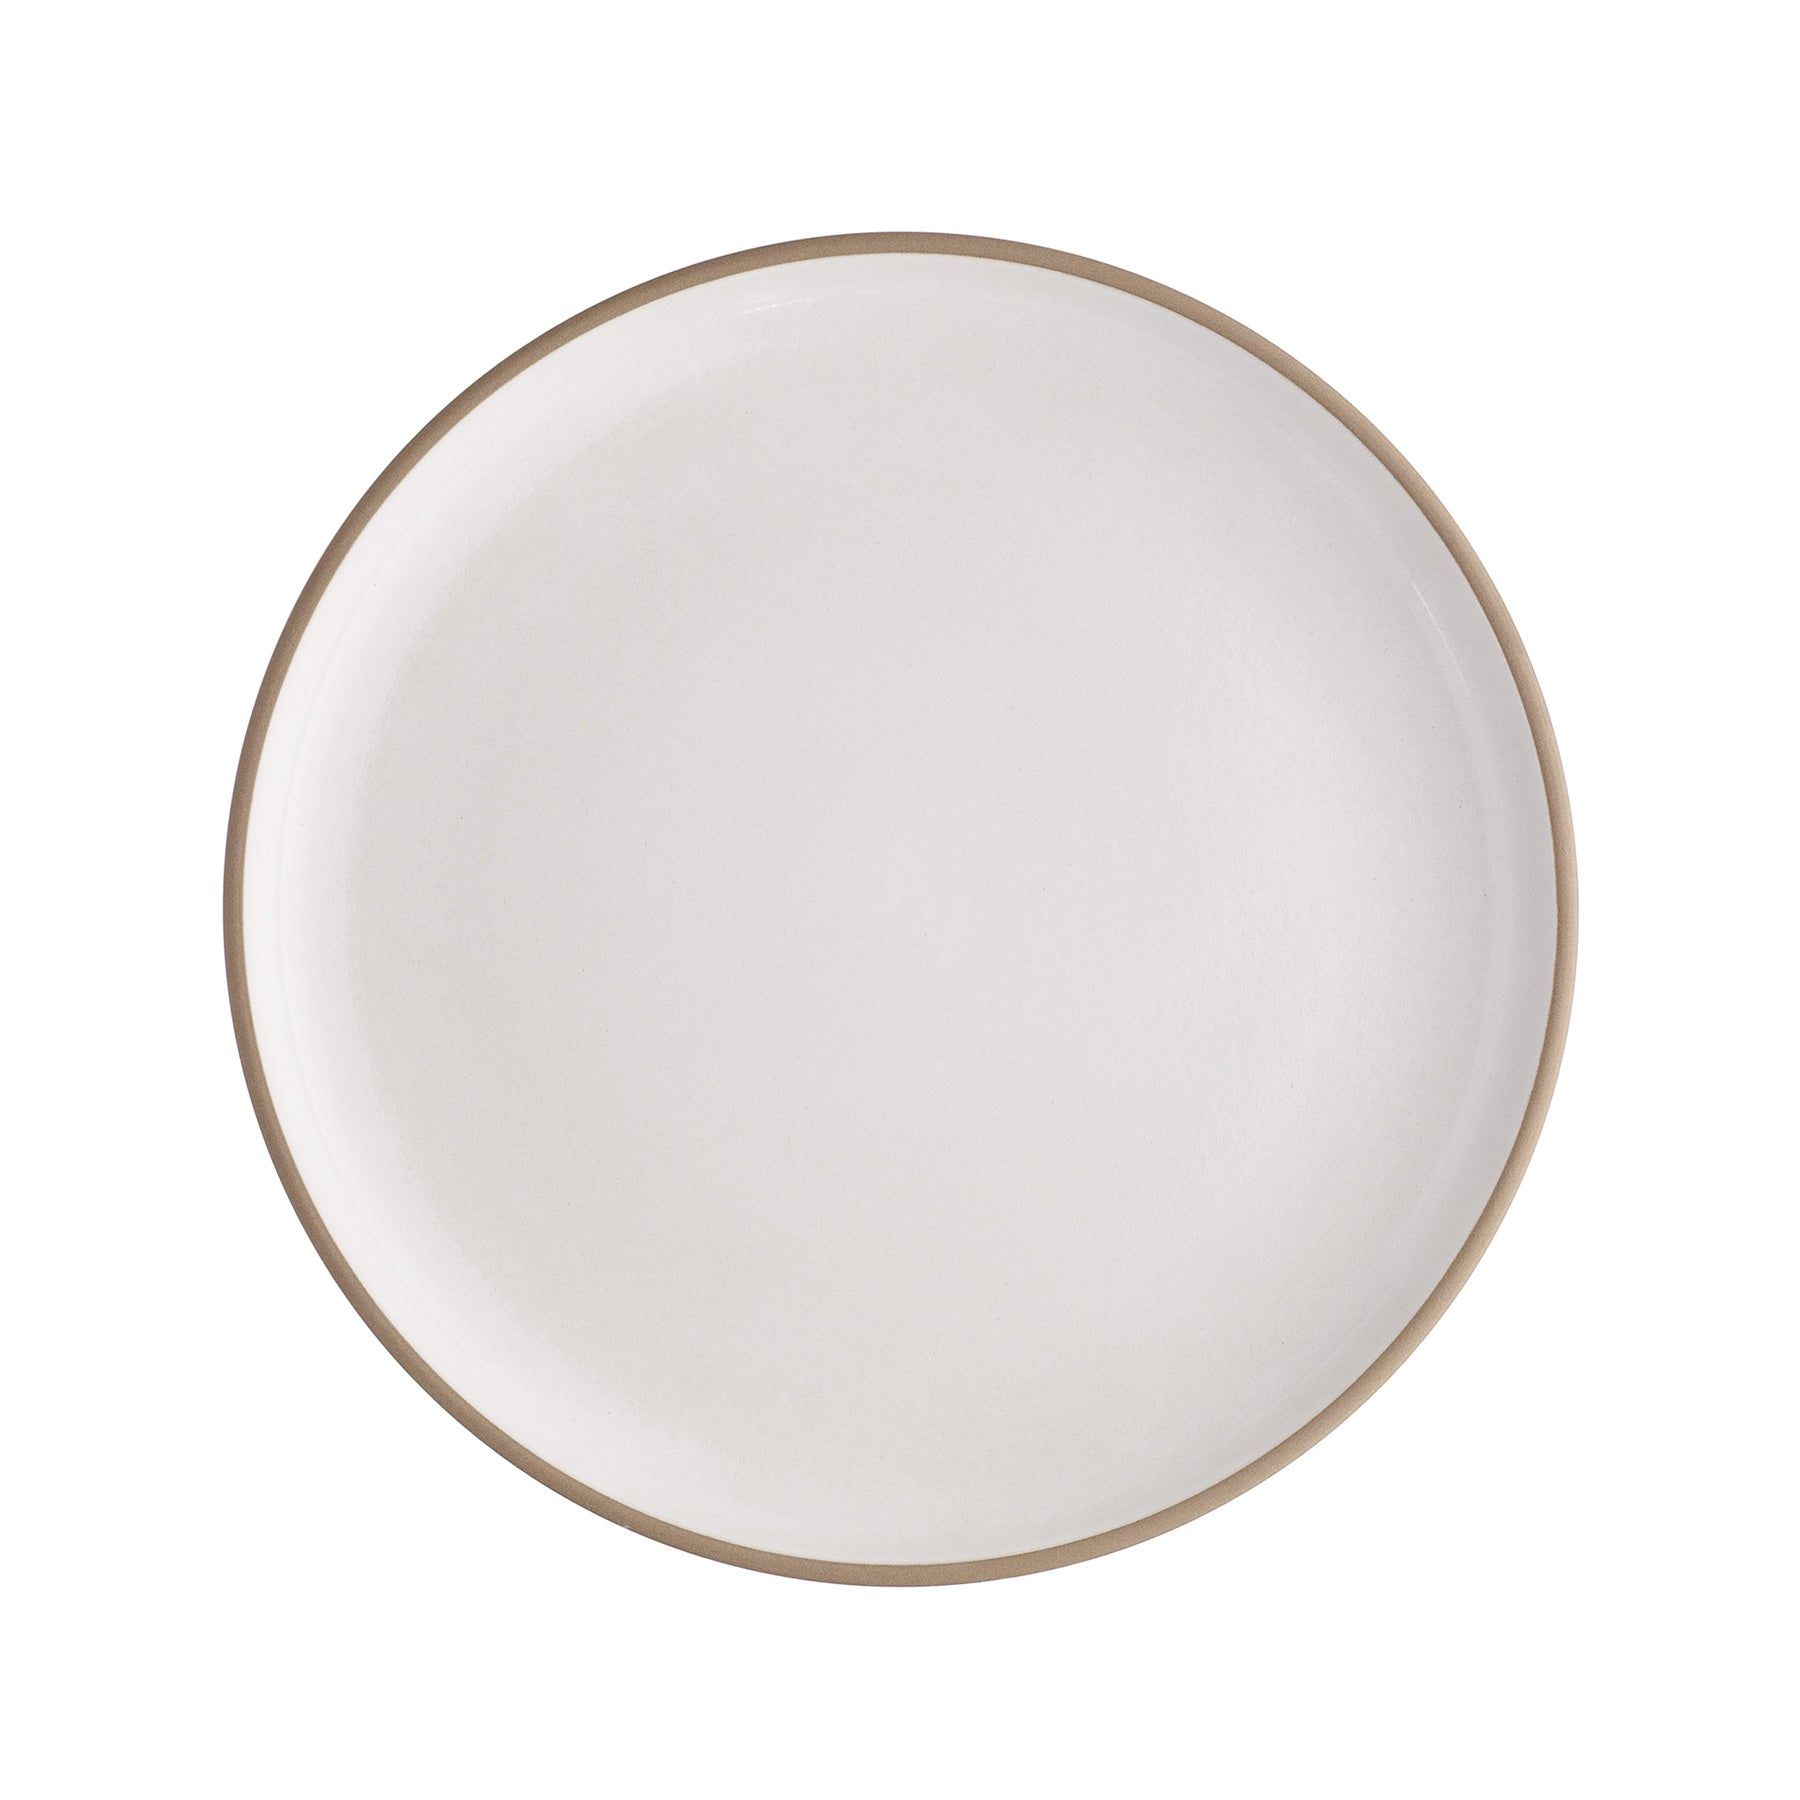 Serving Platter - Opaque White